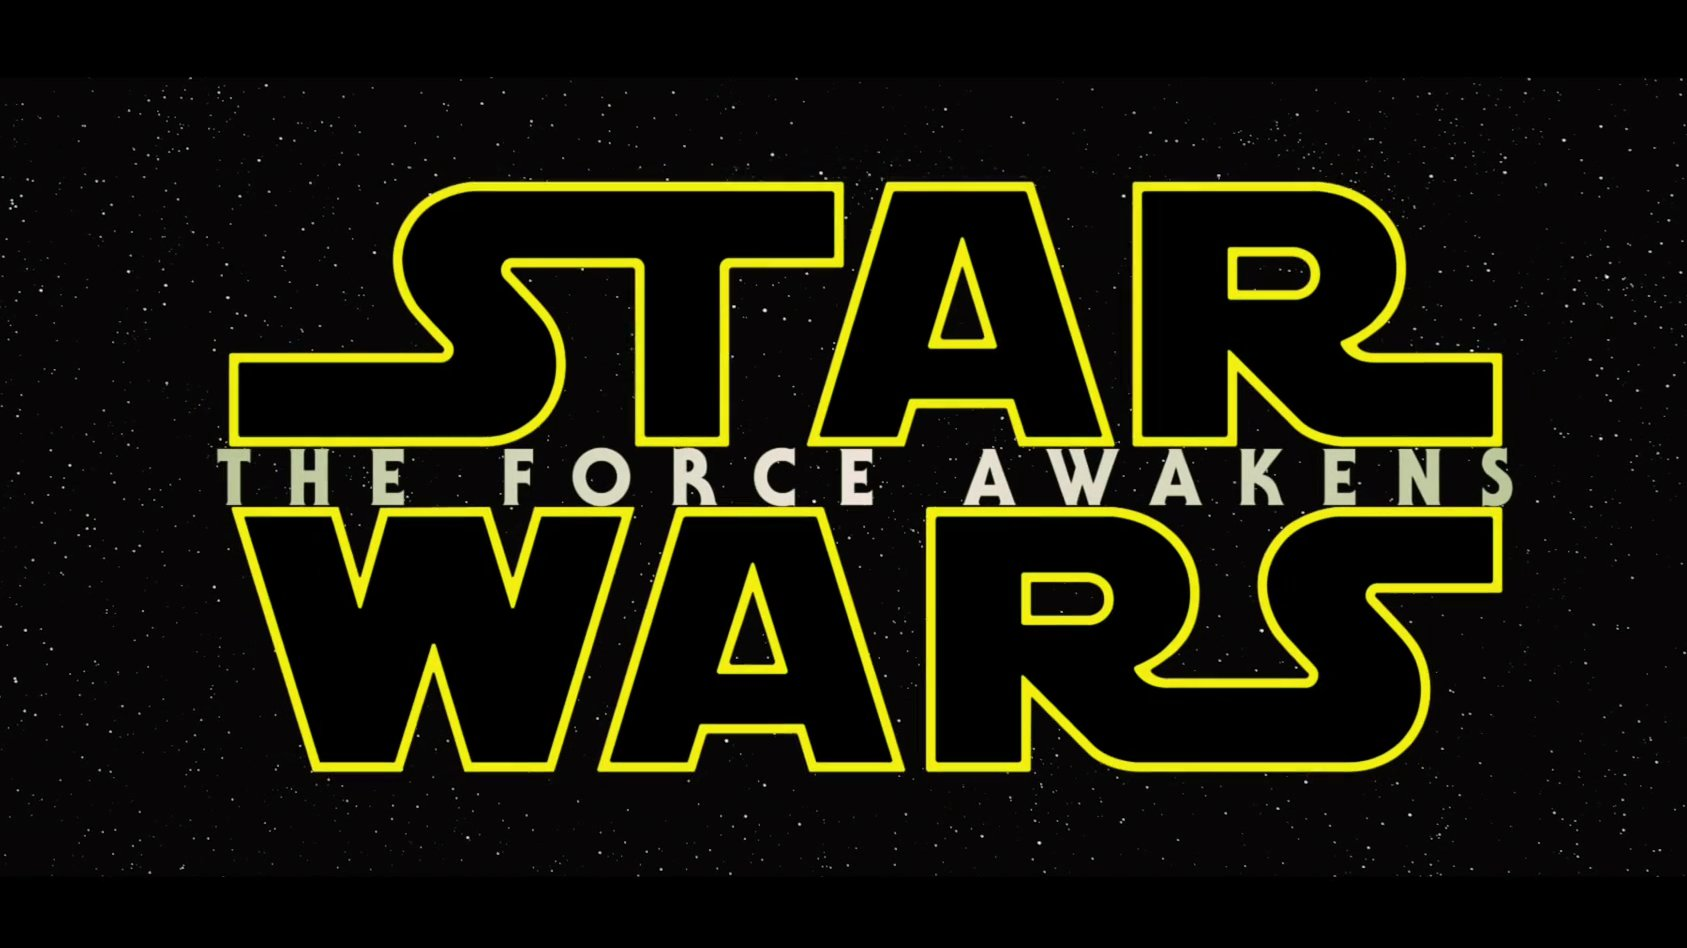 Star Wars: The Force Awakens Trailer (official), 2015.